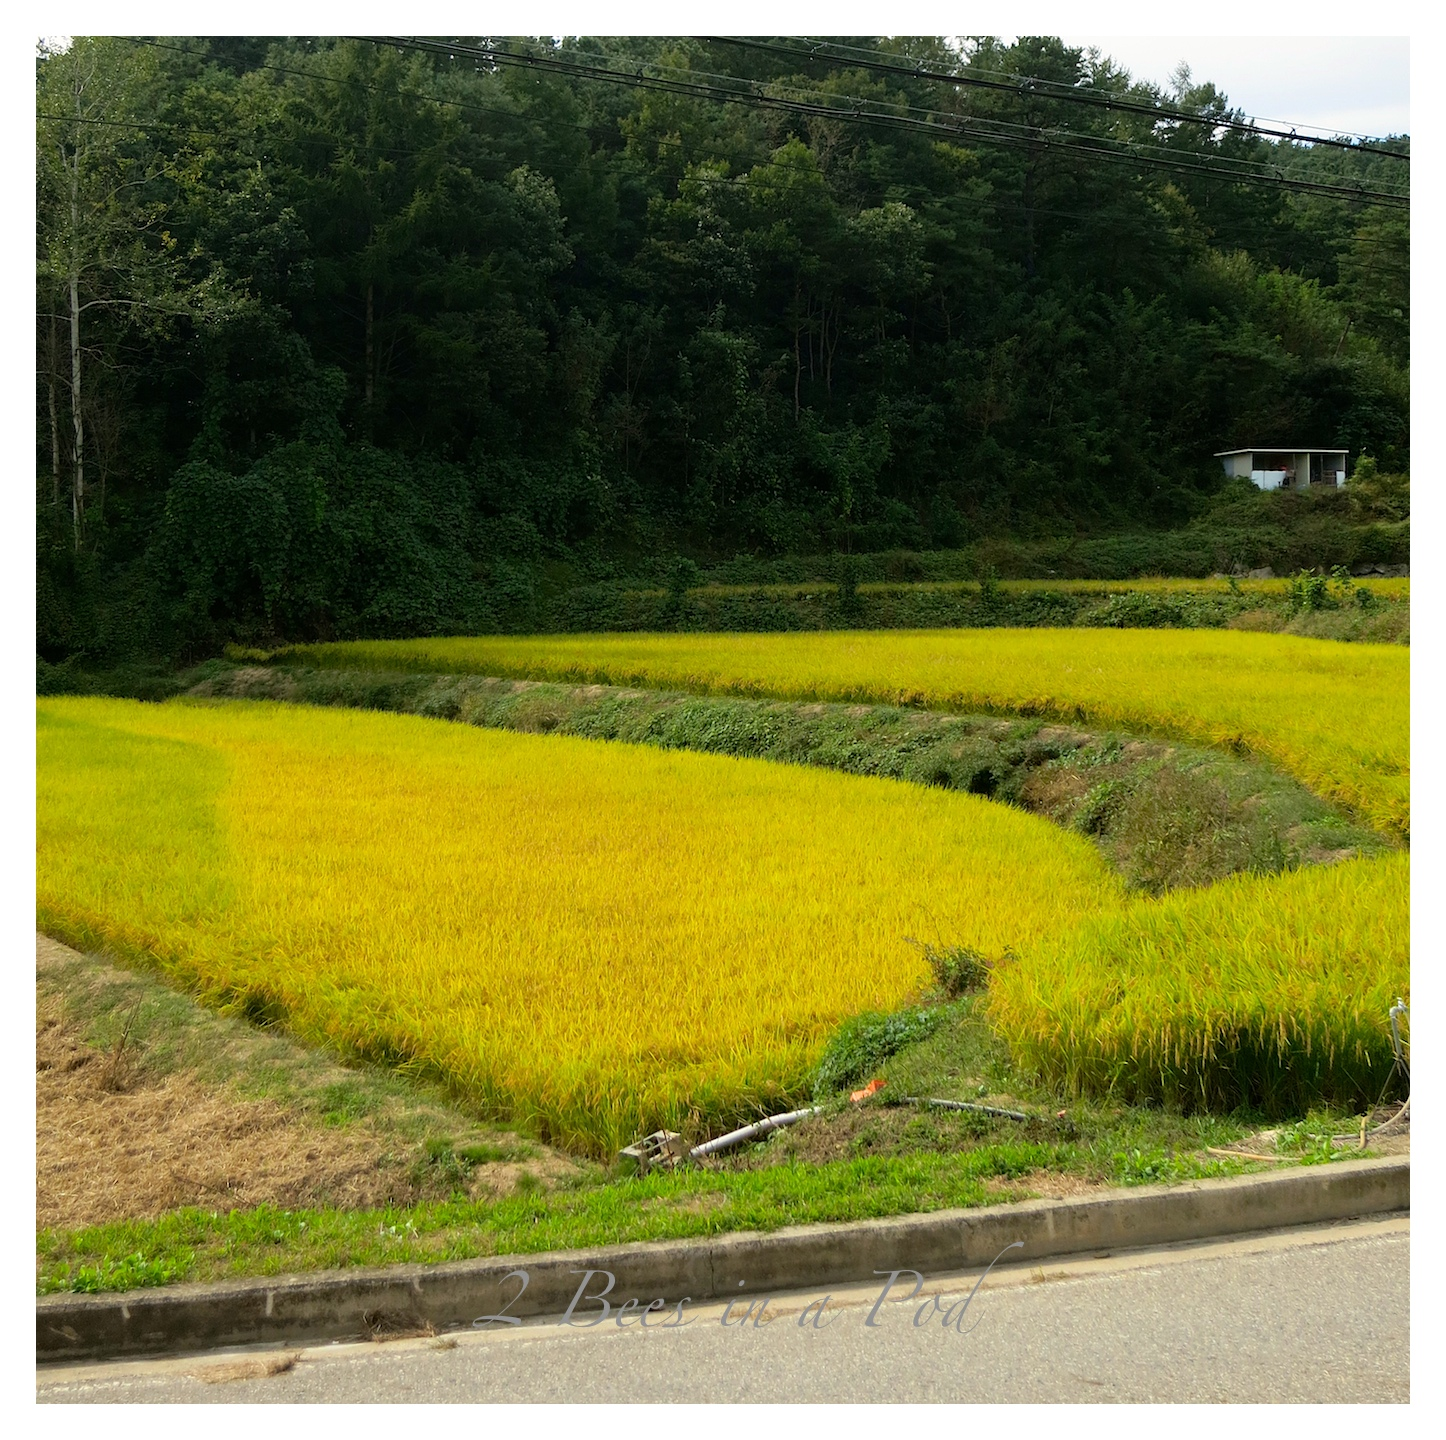 Rice Paddies in the countryside of South Korea